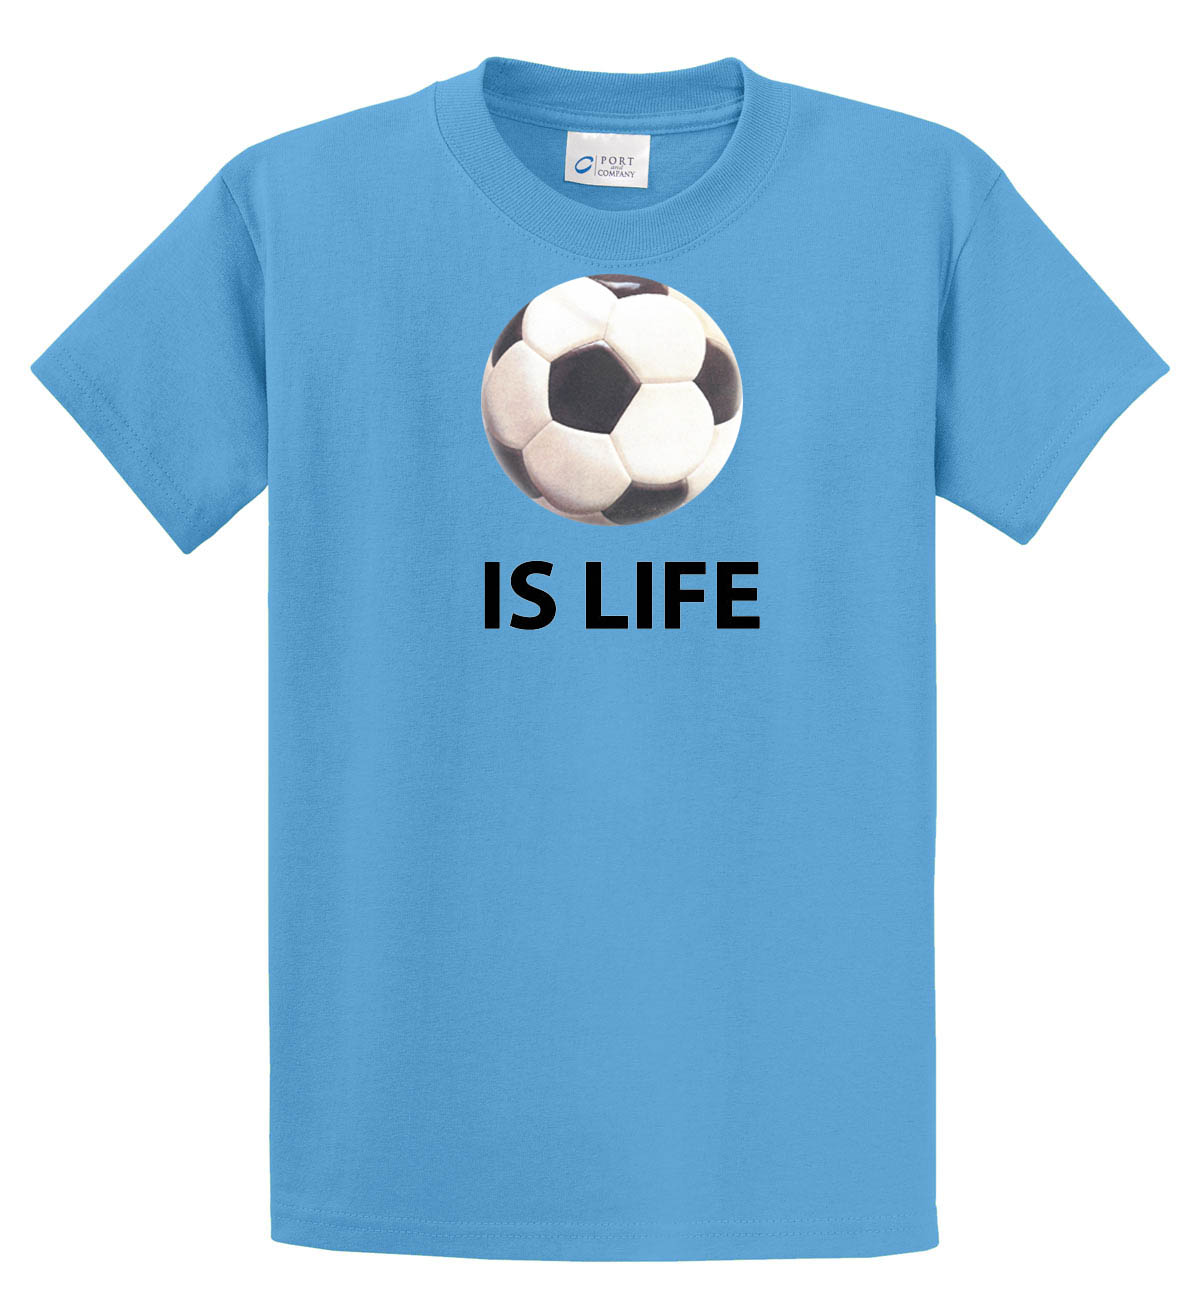 Ball Is Life Tshirt (soccer edition) in aqua blue by Code Four Athletics